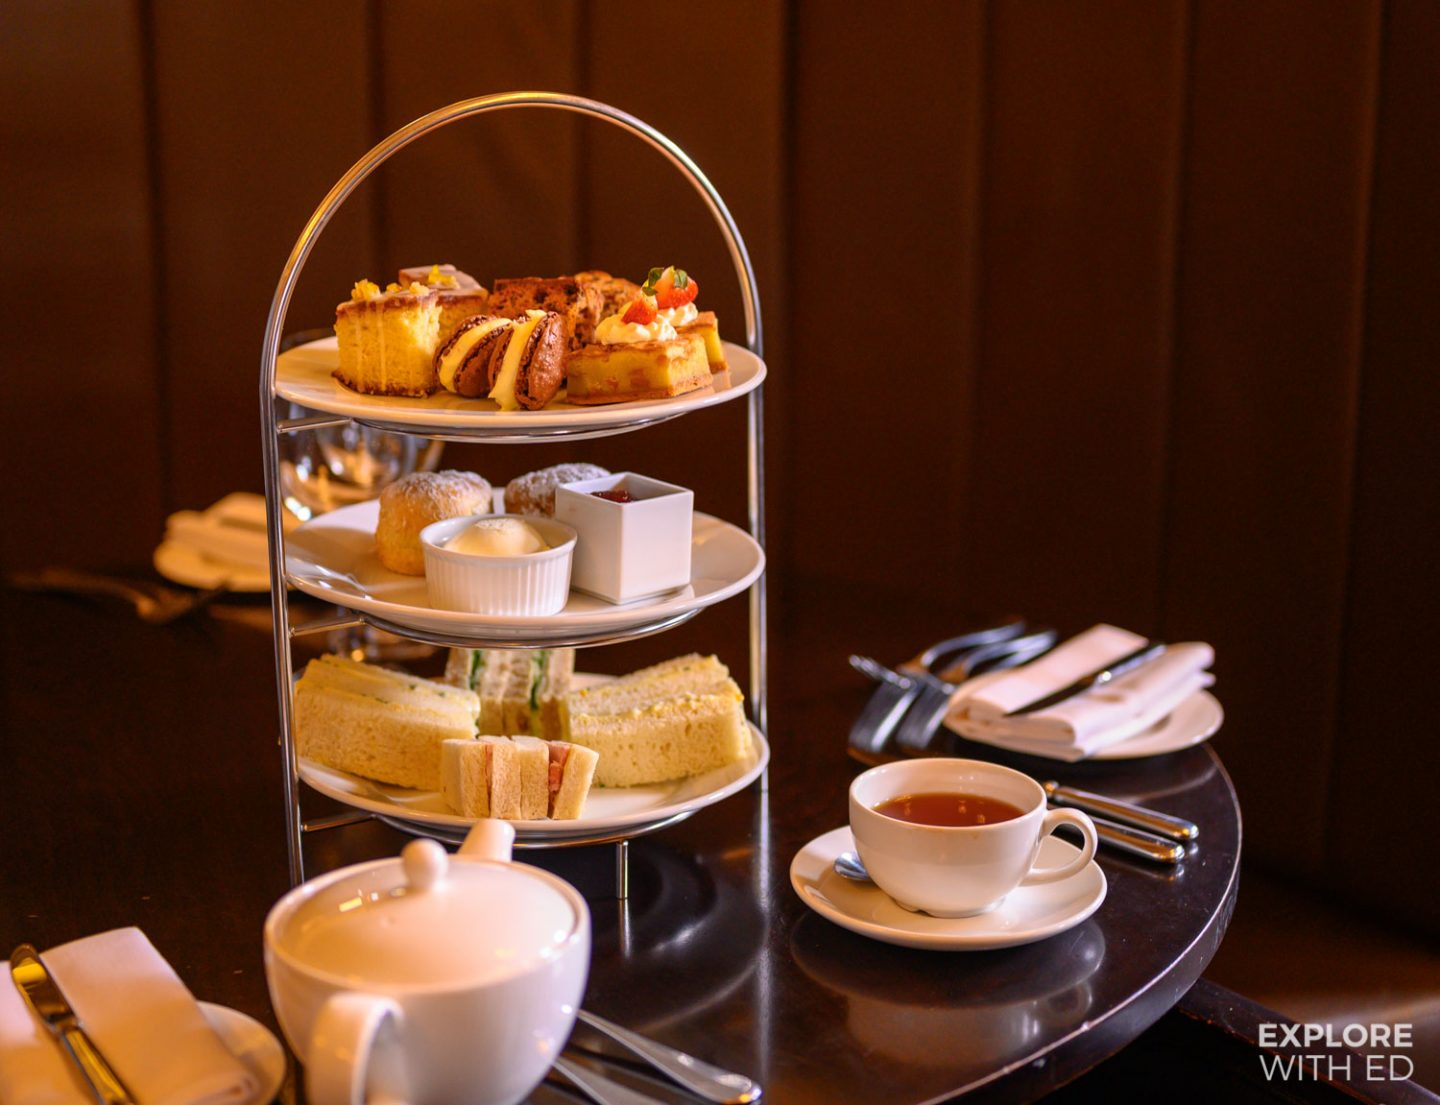 Afternoon Tea at The Daffodil in Cheltenham